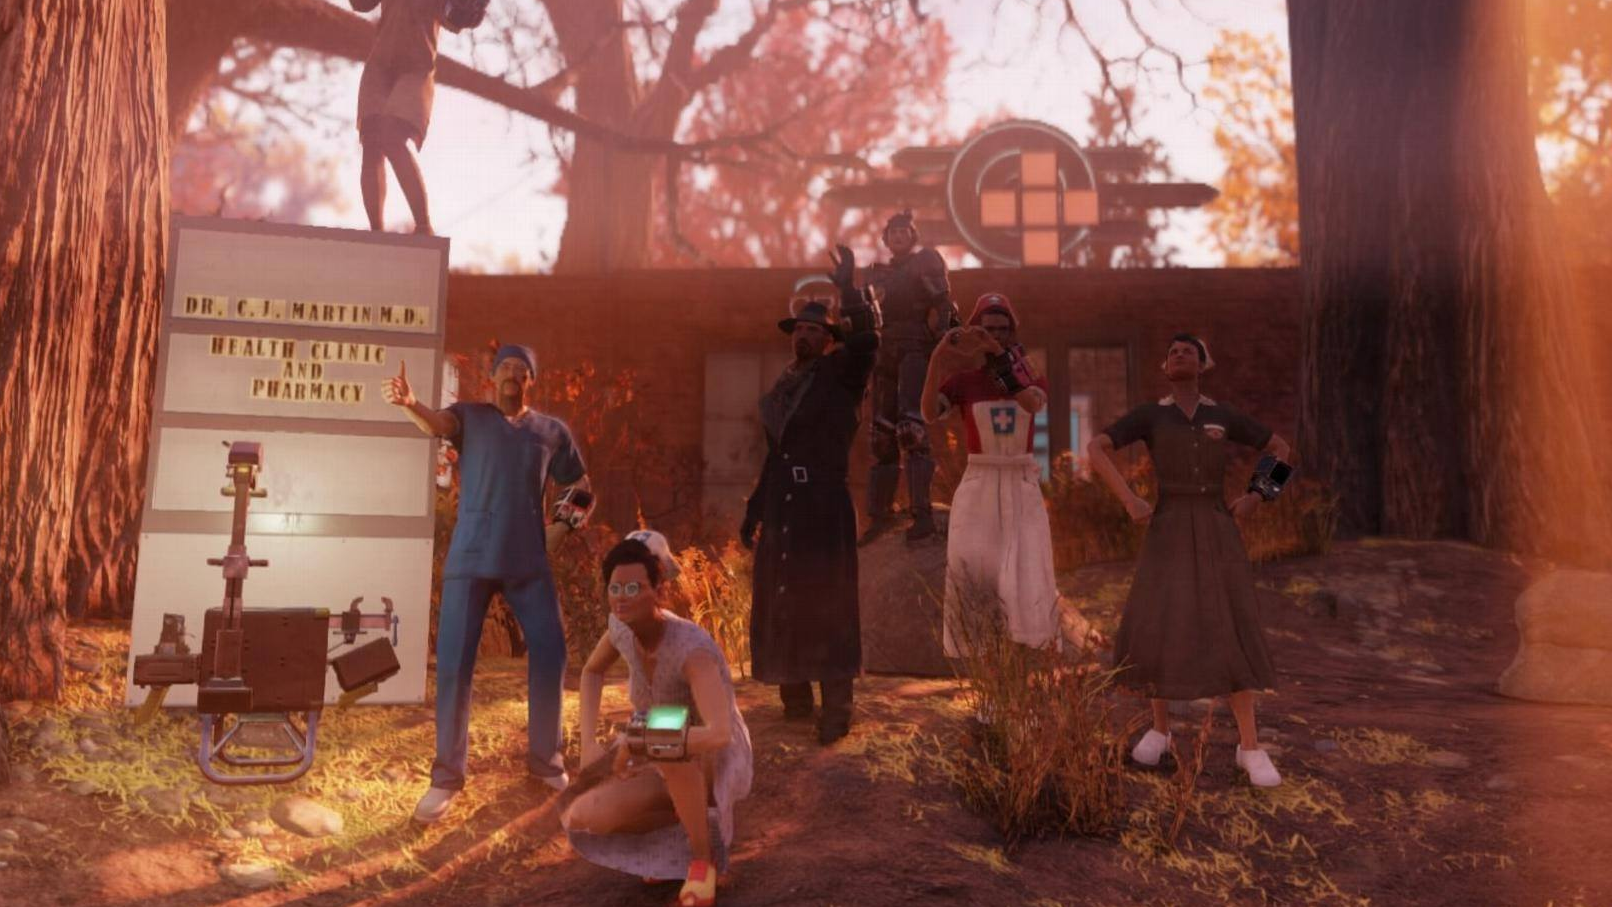 Fallout 76 Players Donate To Wasteland Doctor Whose Real-Life Home Caught Fire